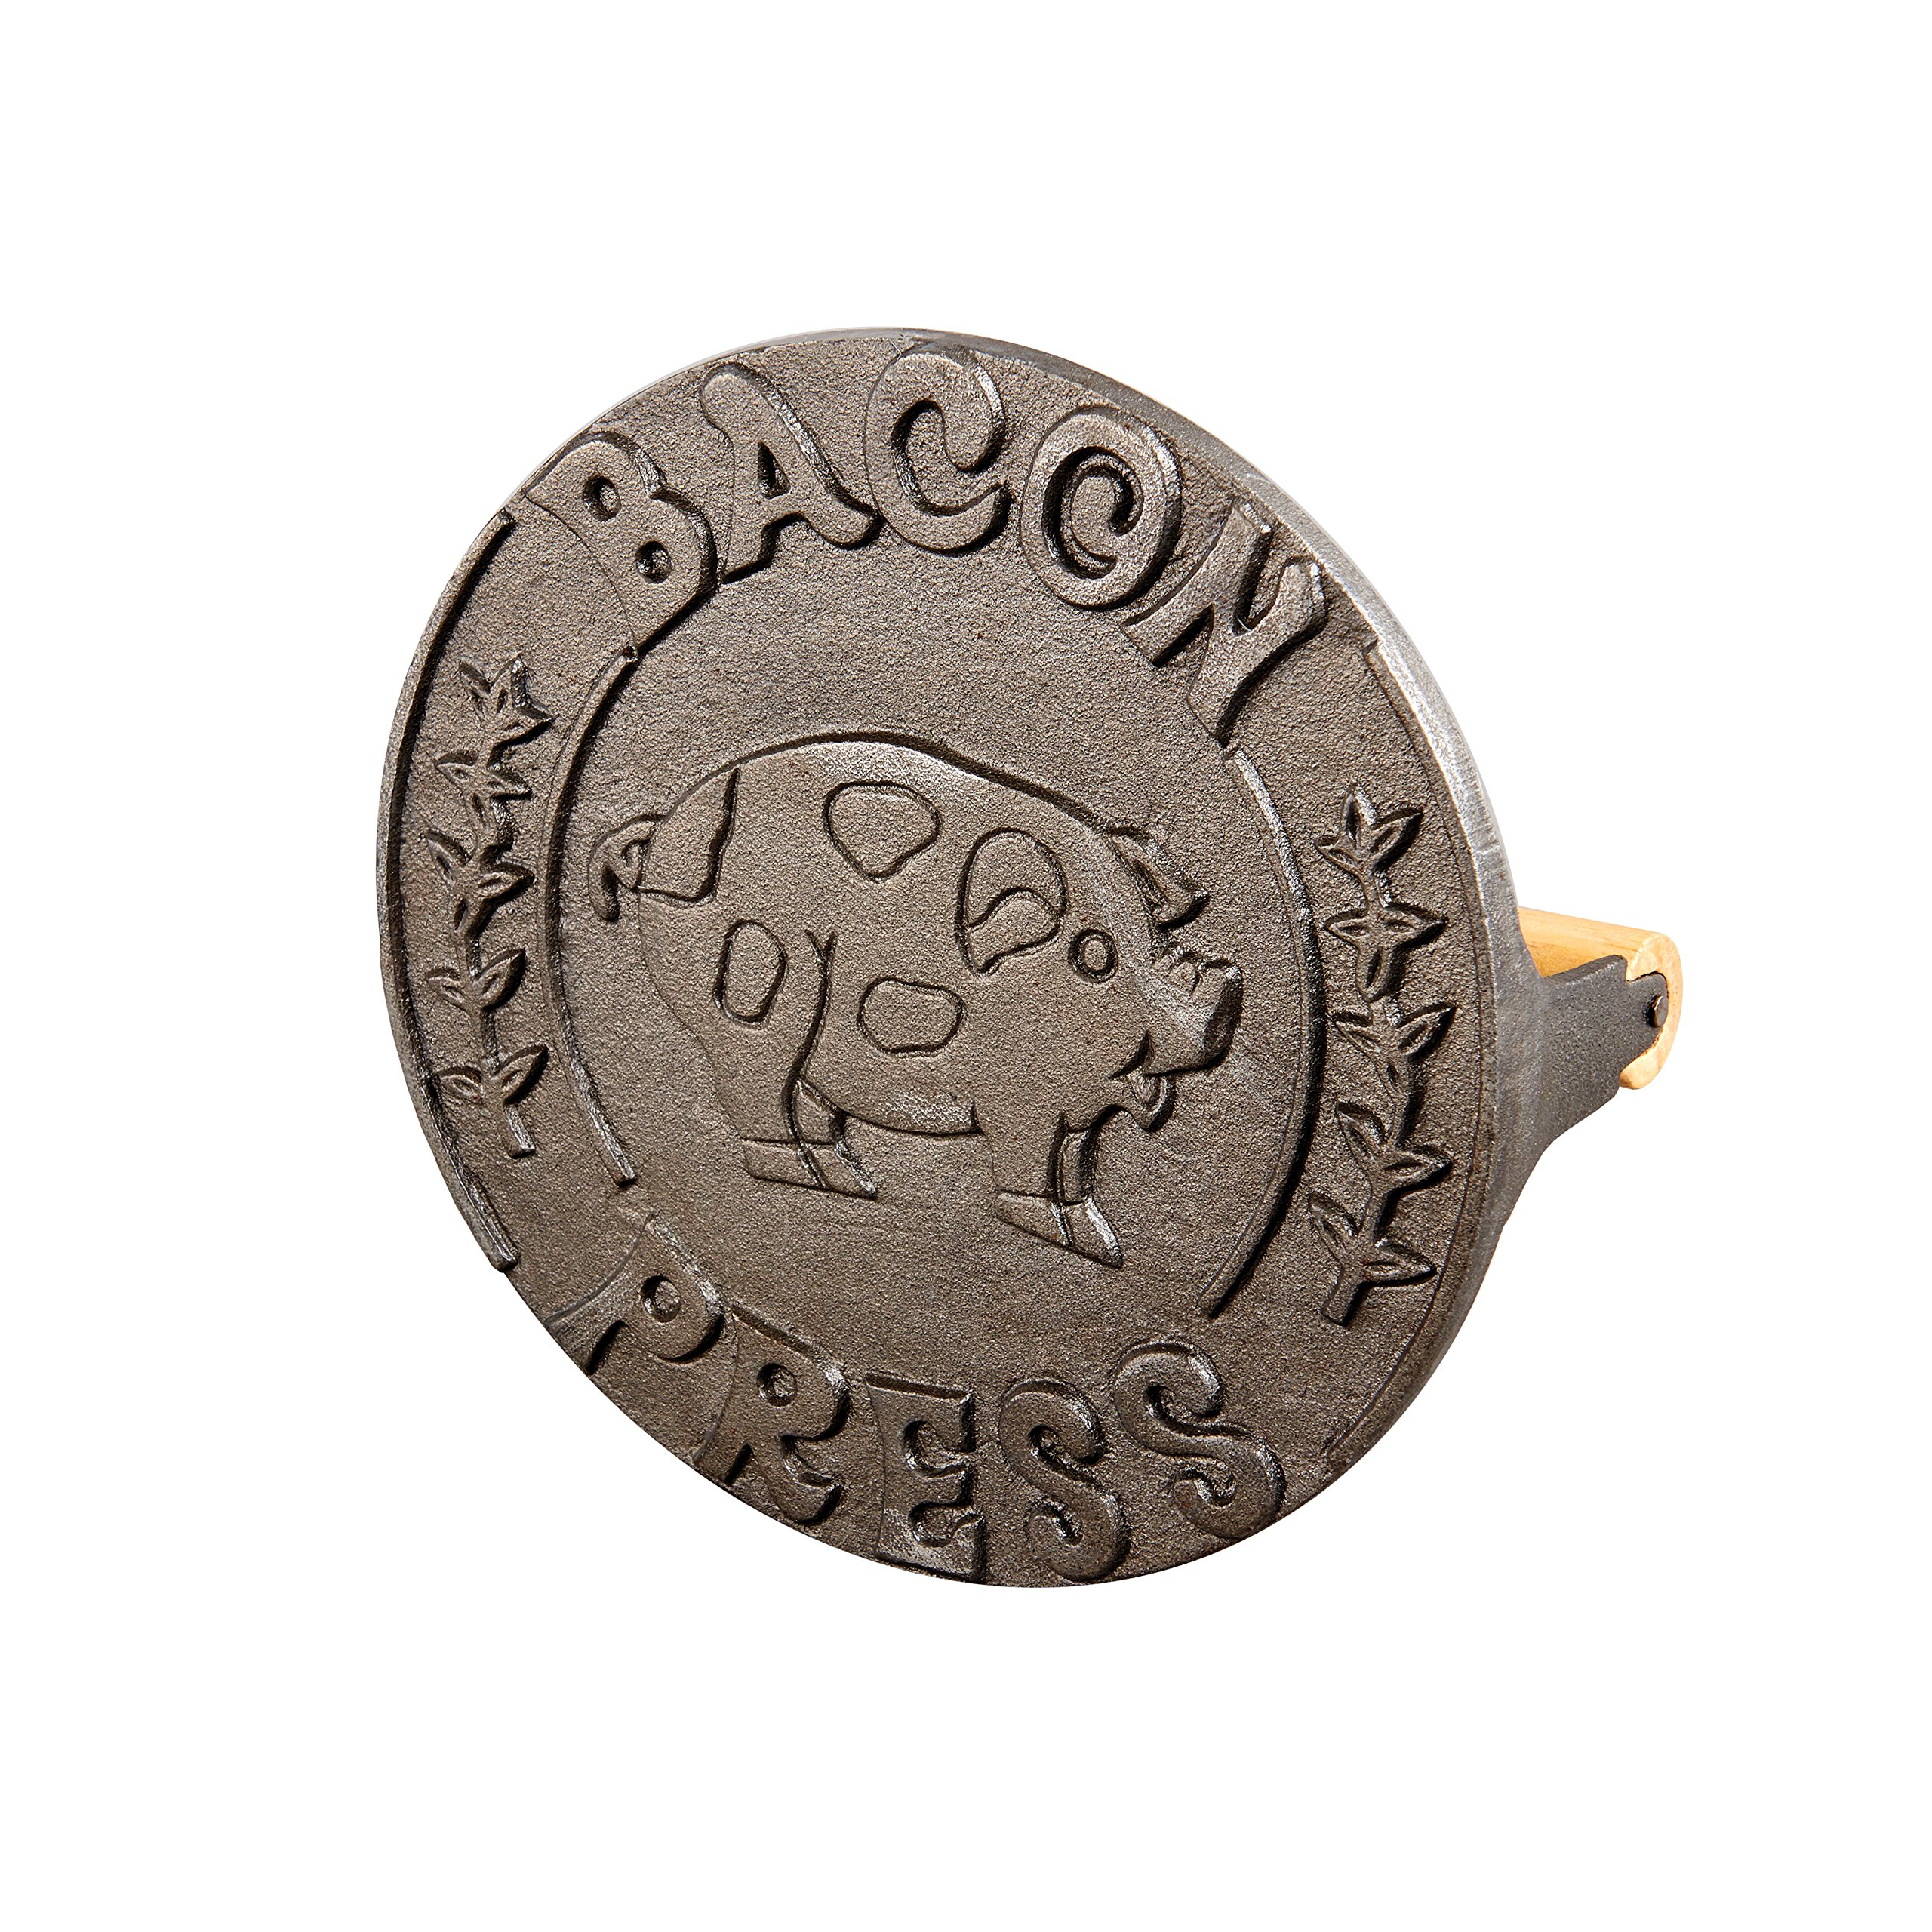 HIC Bacon Press and Steak Weight, Heavyweight Cast Iron with Wooden Handle, For Grill Panini Burgers Bacon and Sausage by HIC Harold Import Co.